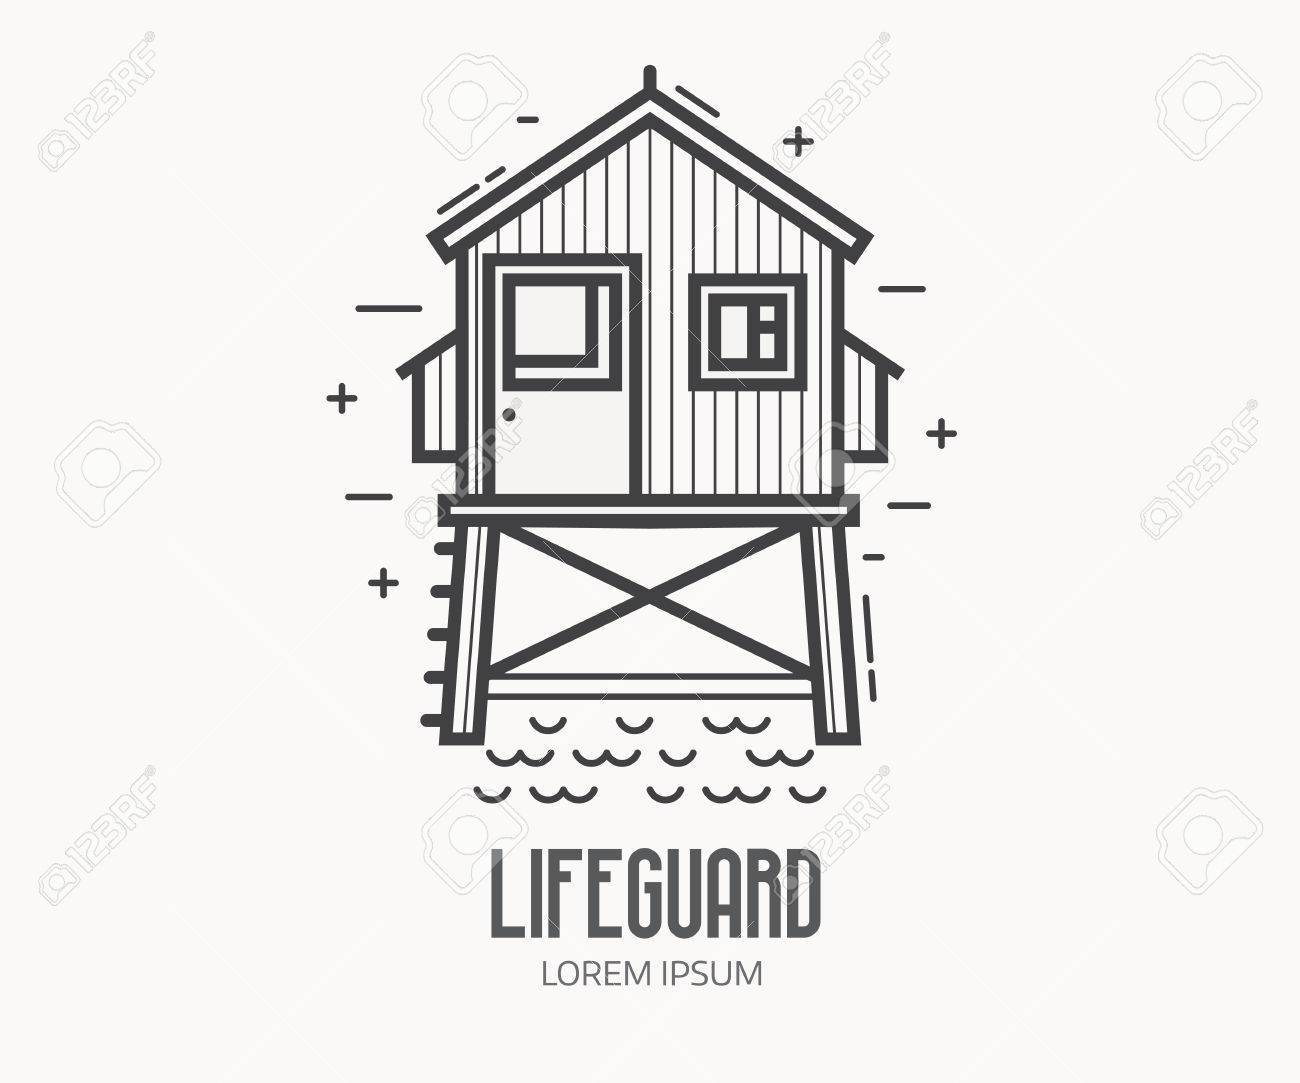 Beach Lifeguard Logo In Thin Line Design. Life Guard House Or ...